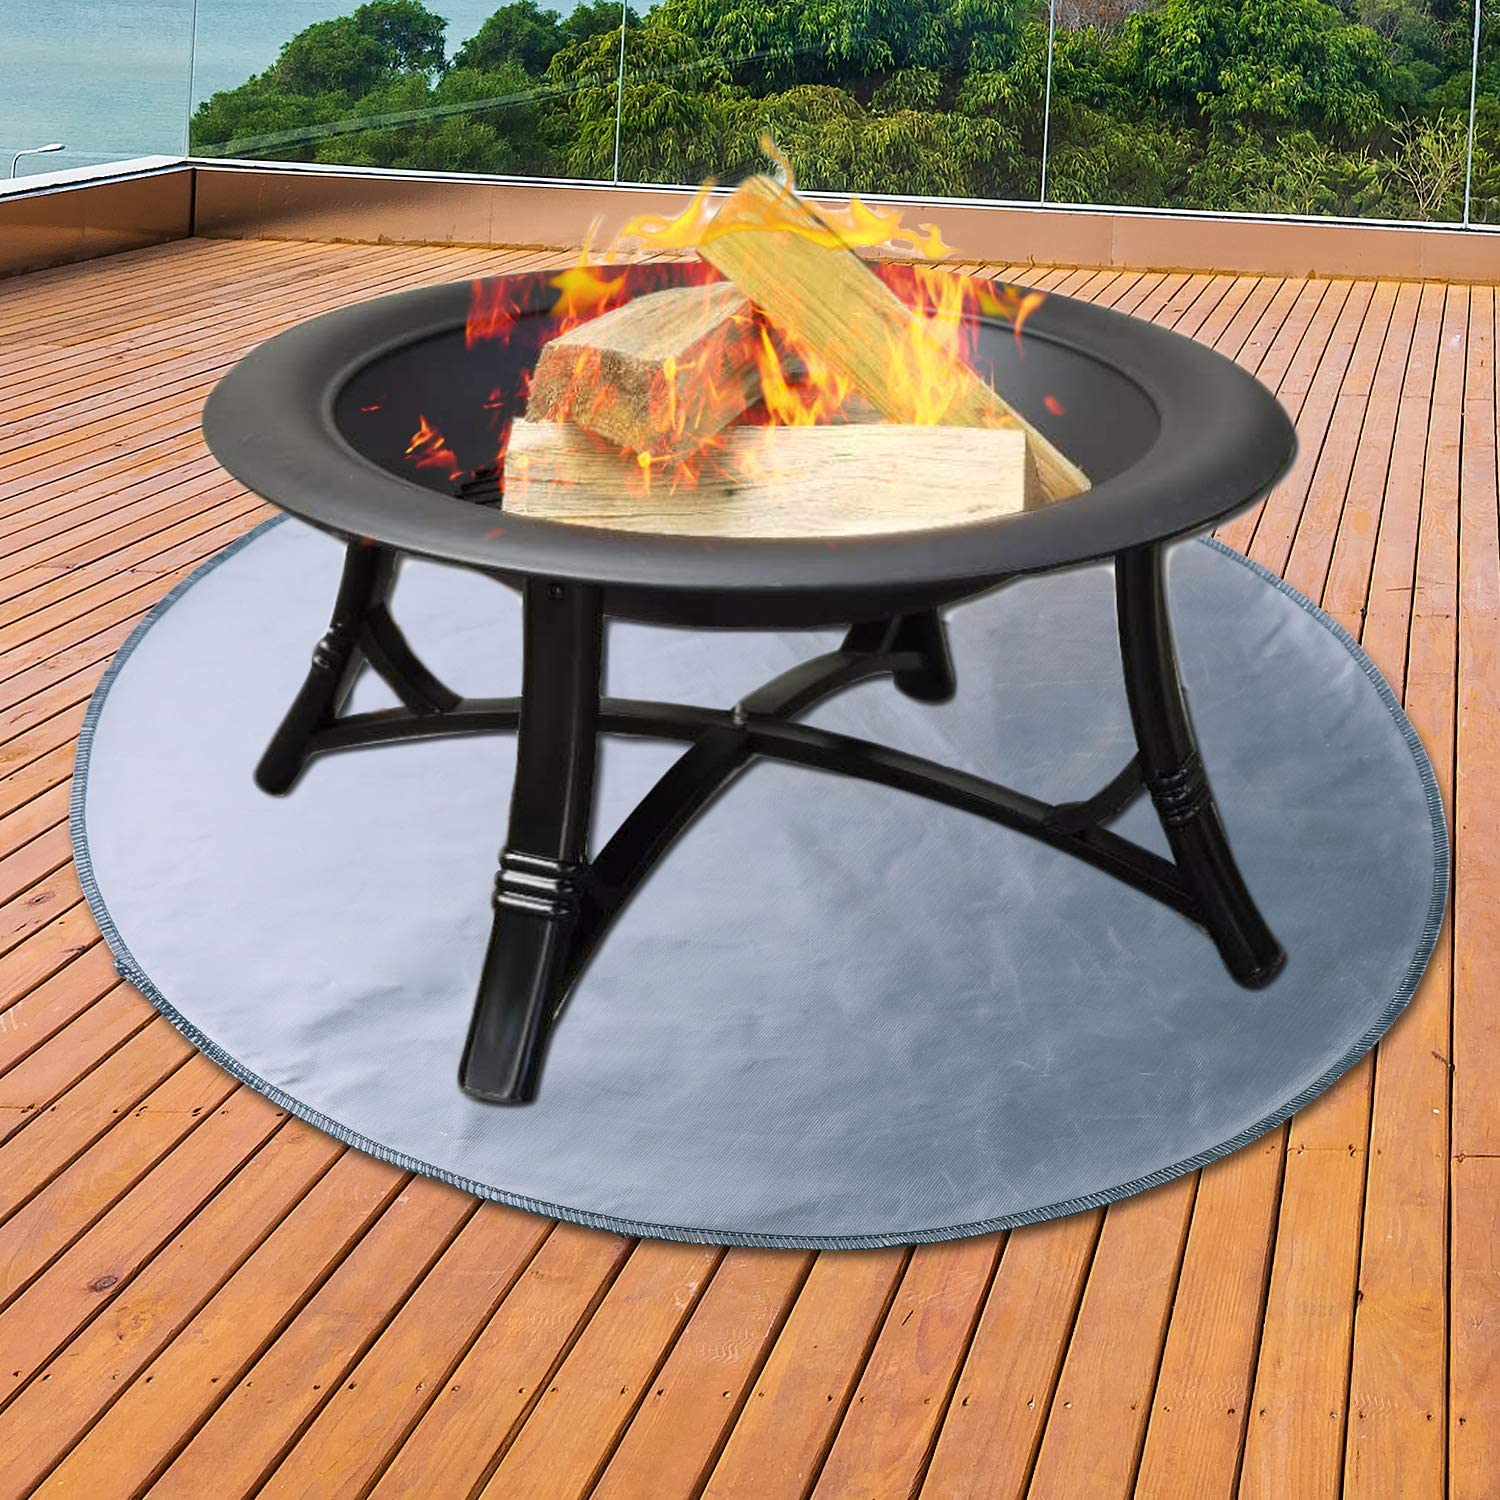 Amazon Com Uterstyle Fire Pit Mat Round Grill Mat For Ground Patio Deck Lawn Outdoor Or Campsite Protection Ember Mat Pad Silver 24 X24 Garden Outdoor